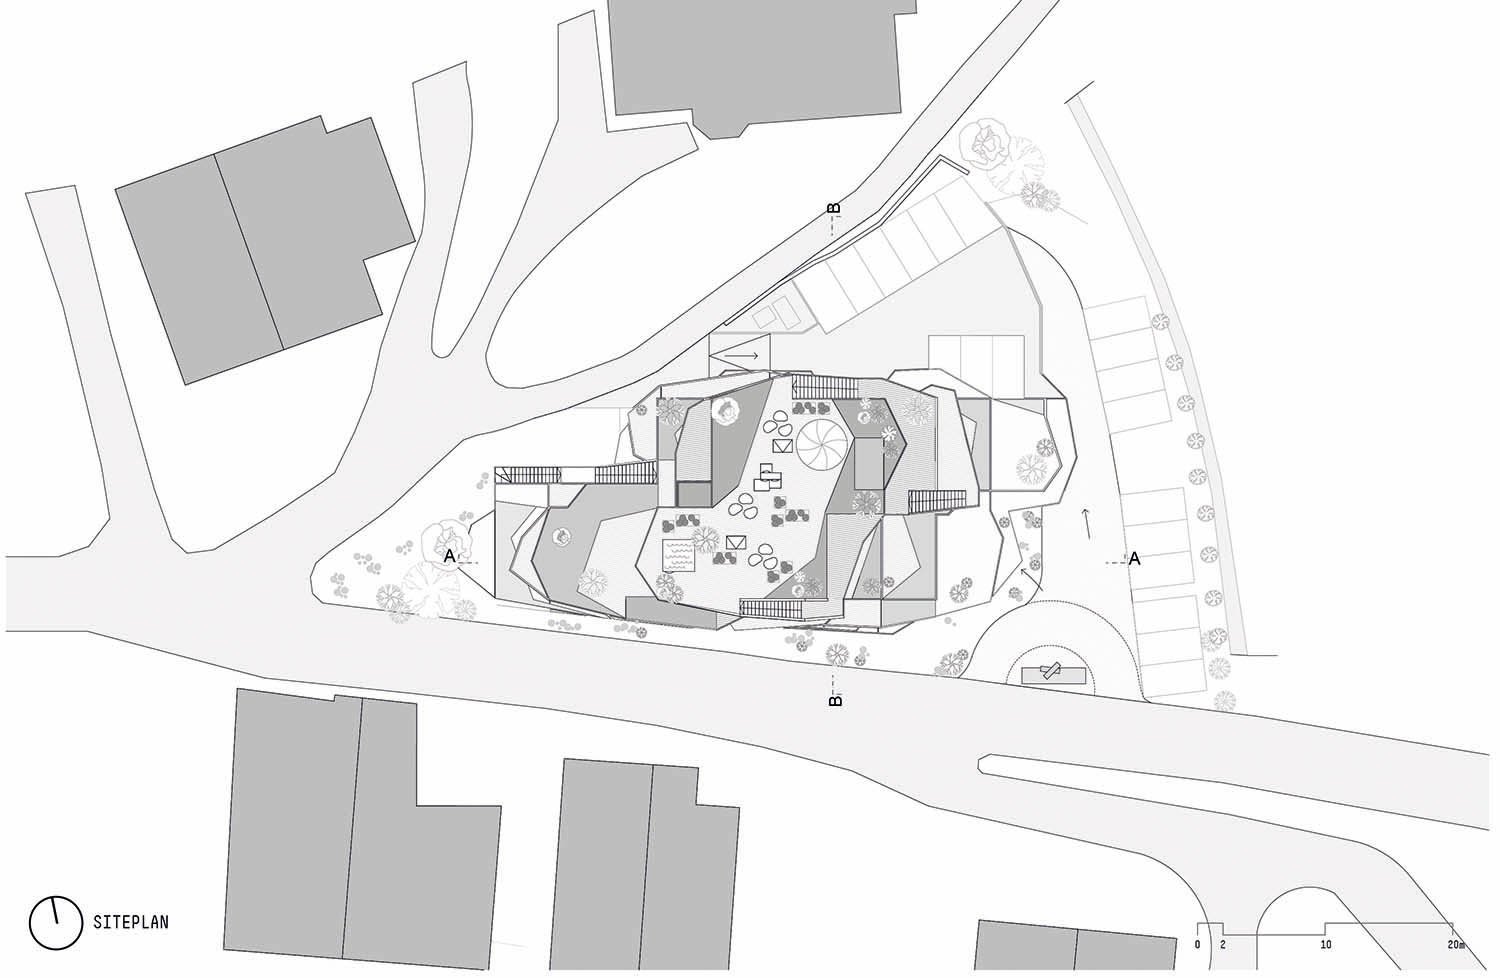 Siteplan noa* network of architecture}